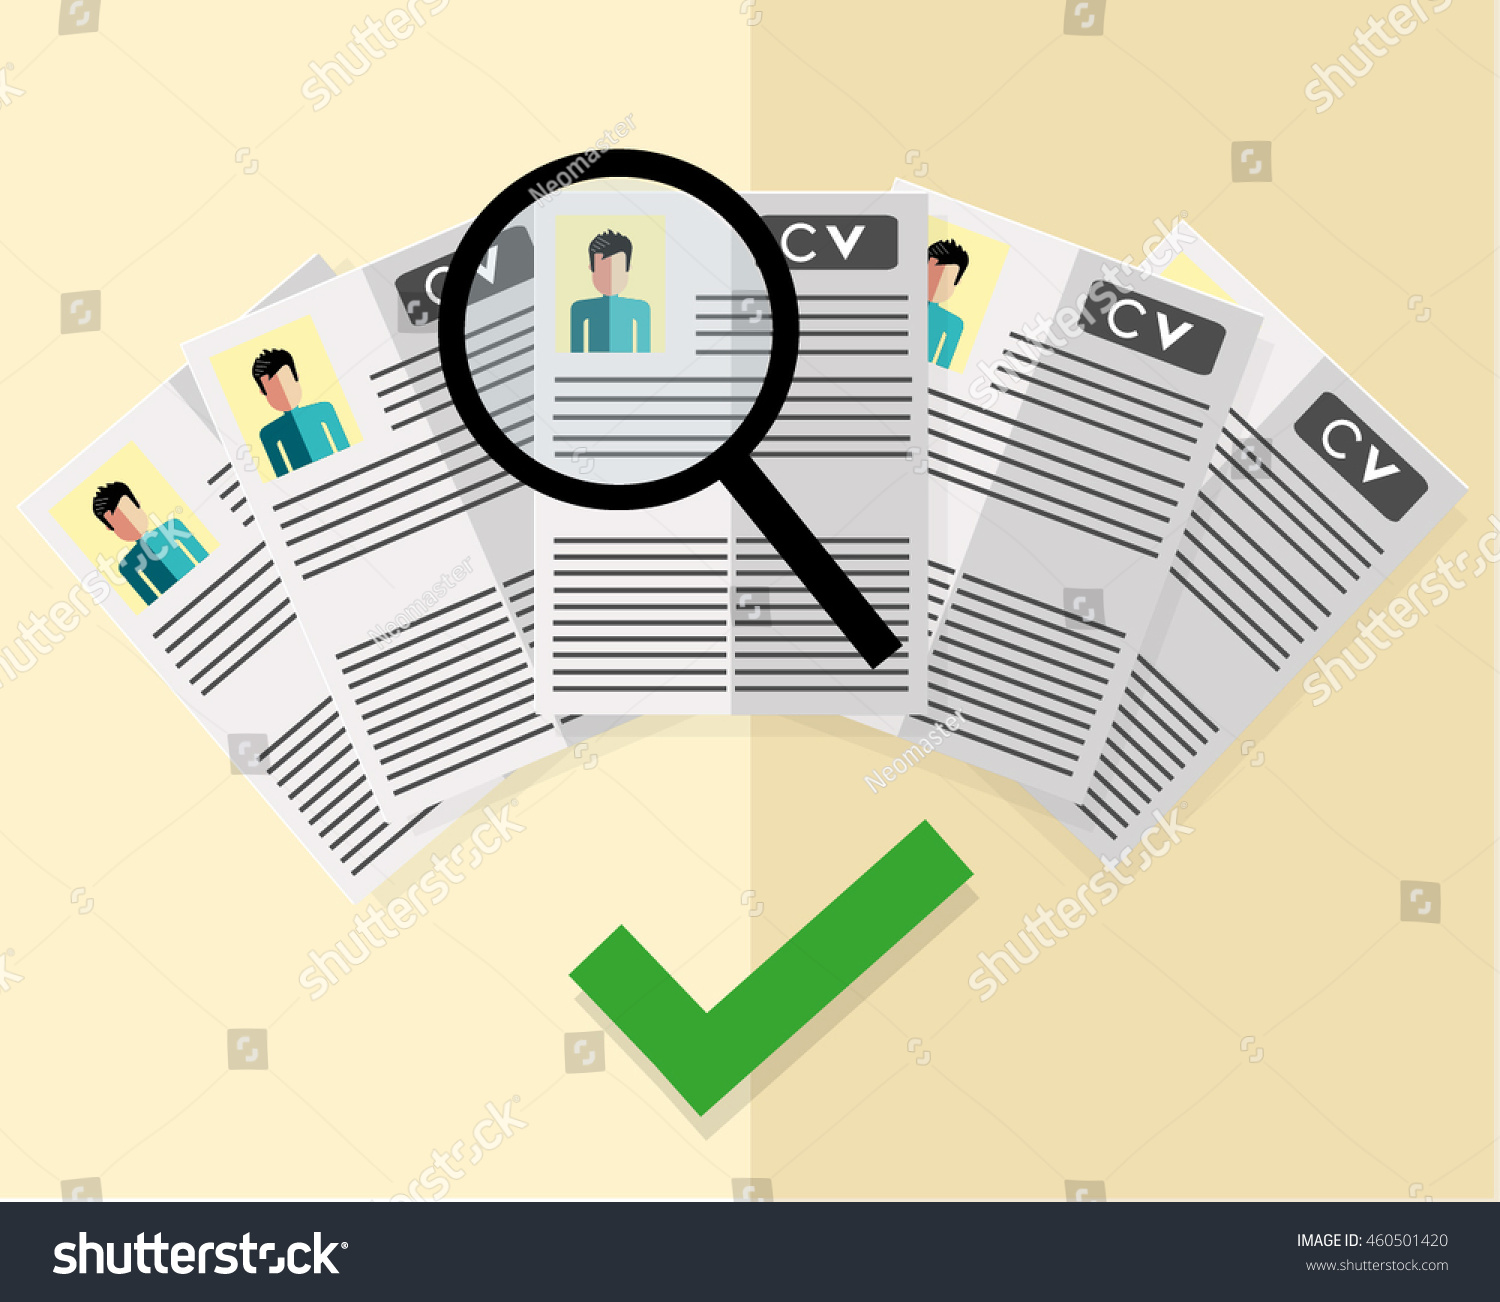 hr manager searching right candidate job stock vector 460501420